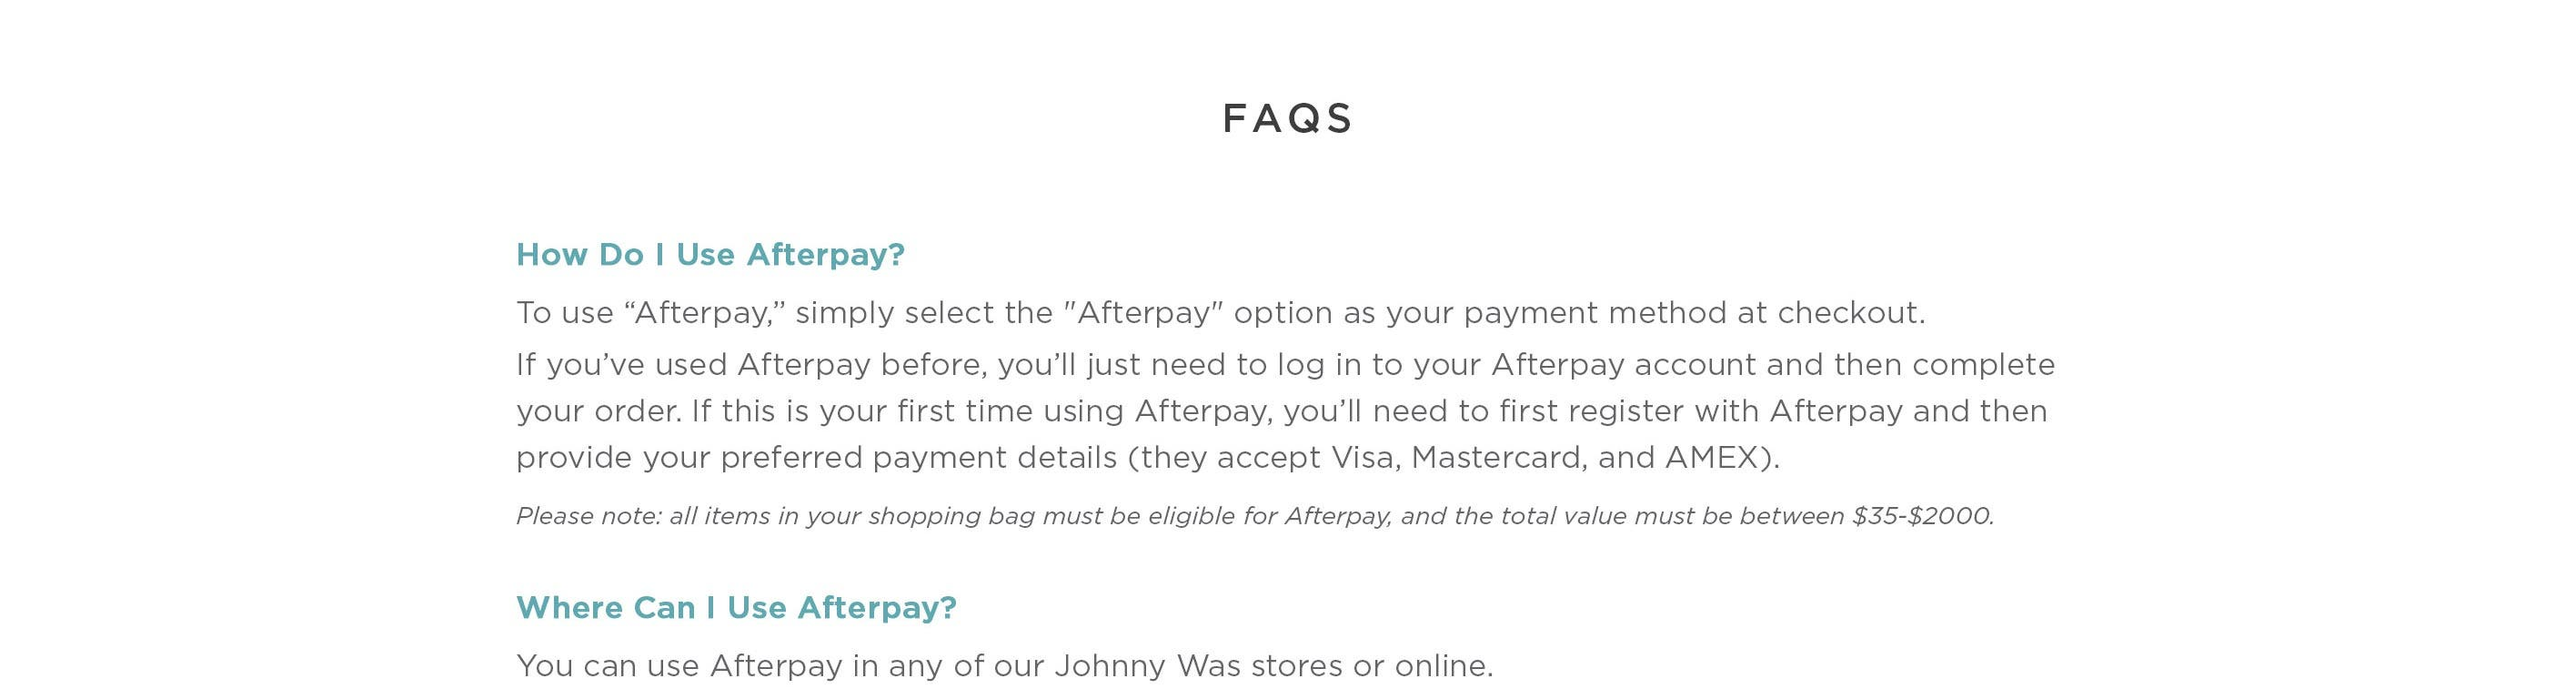 """FAQS - To use """"Afterpay,"""" simple select the """"Afterpay"""" option as your payment method at checkout. If you've used Afterpay before you'll just need to log in to your Afterpay account and then complete your order. If this is your first time using Afterpay, y"""